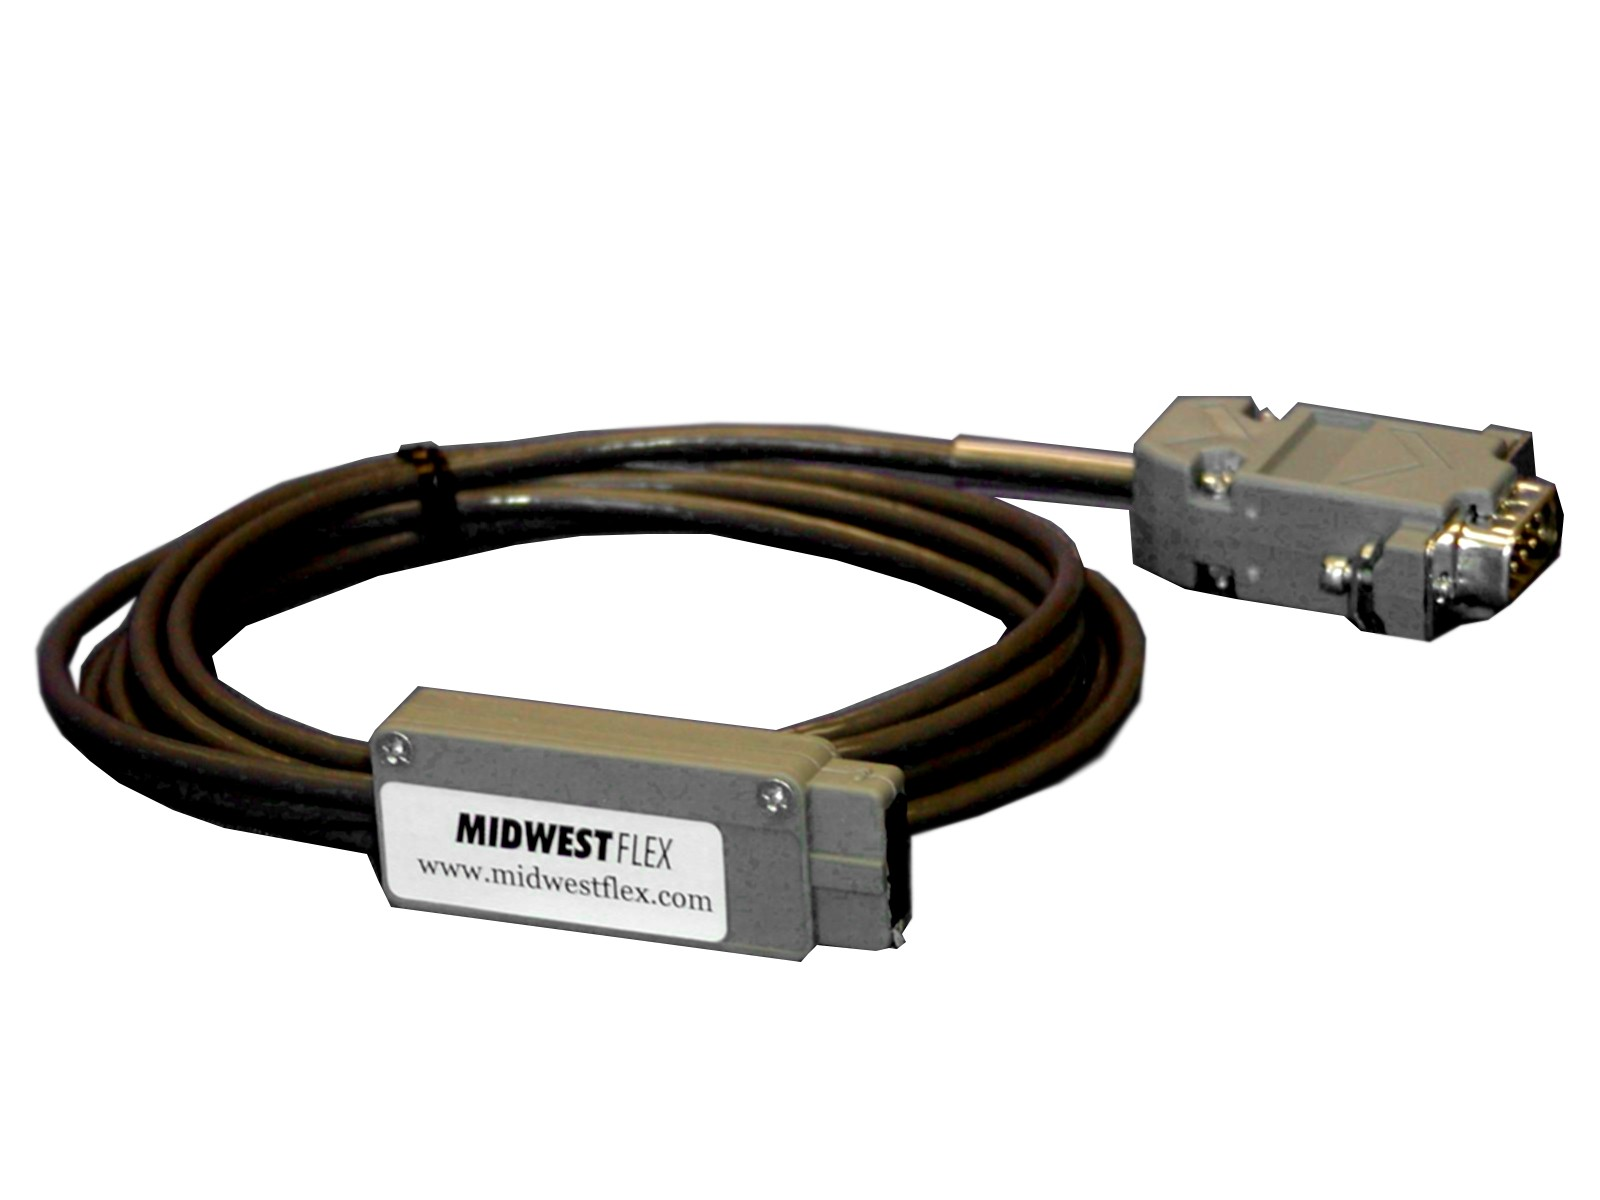 C-96507-06 FlexConnect Carleton Test-A-Pack 2600 to Digimatic output (6 ft)